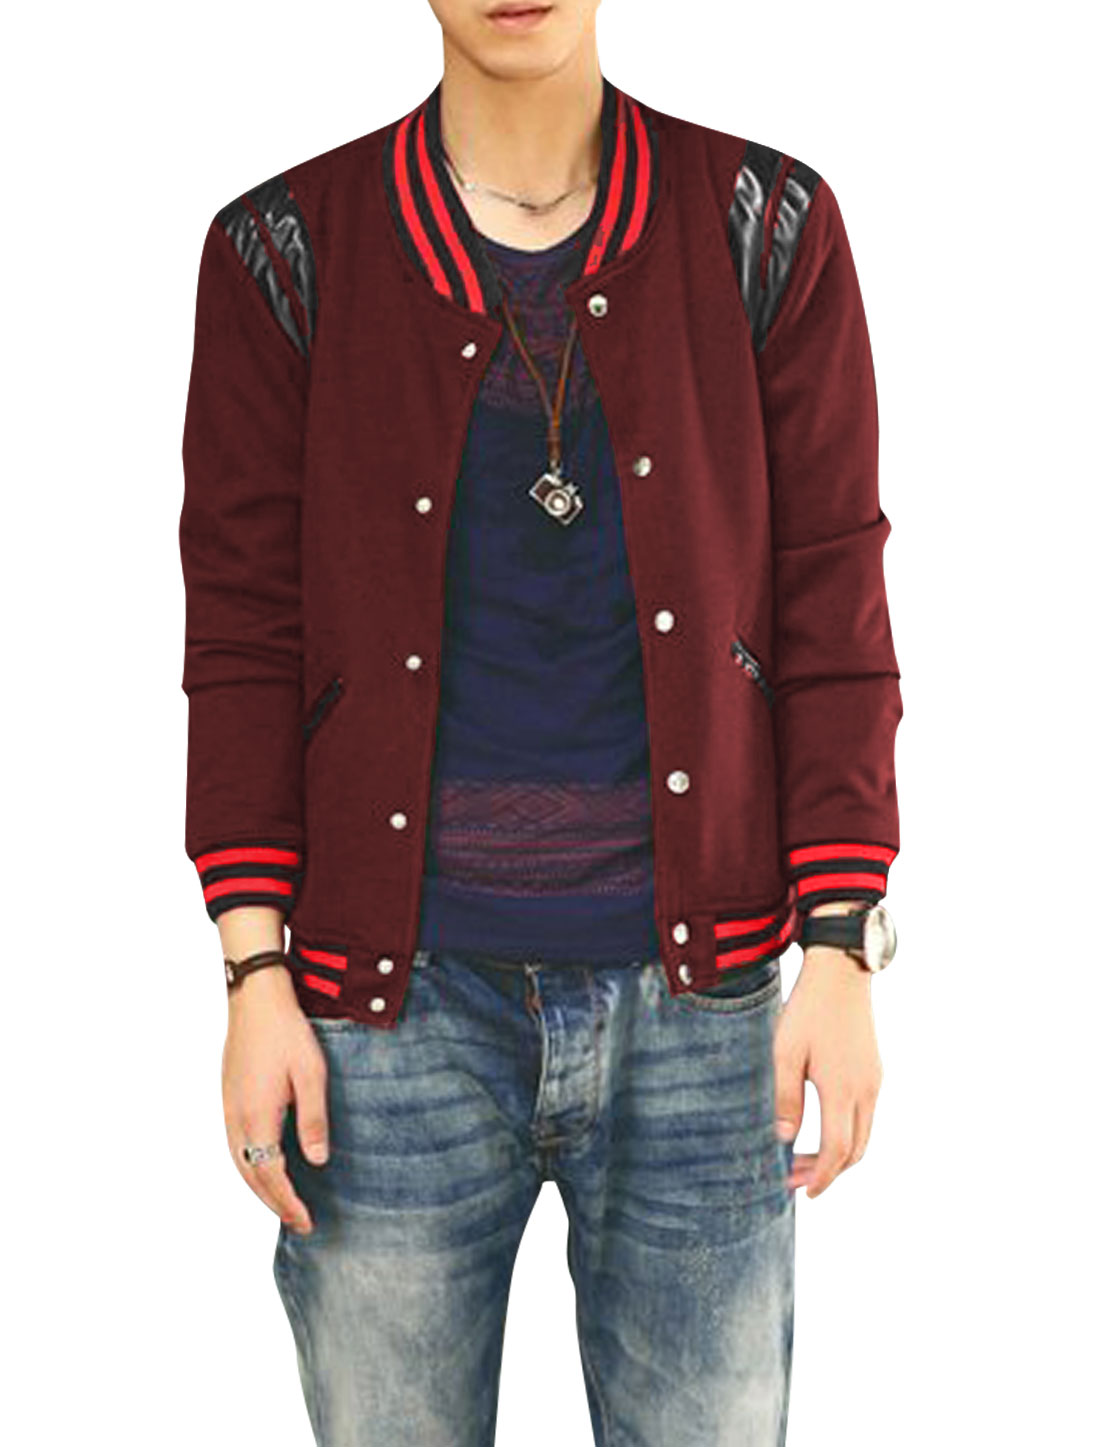 Men Imitation Leather Spliced Long Sleeve Button Down Casual Jacket Burgundy M